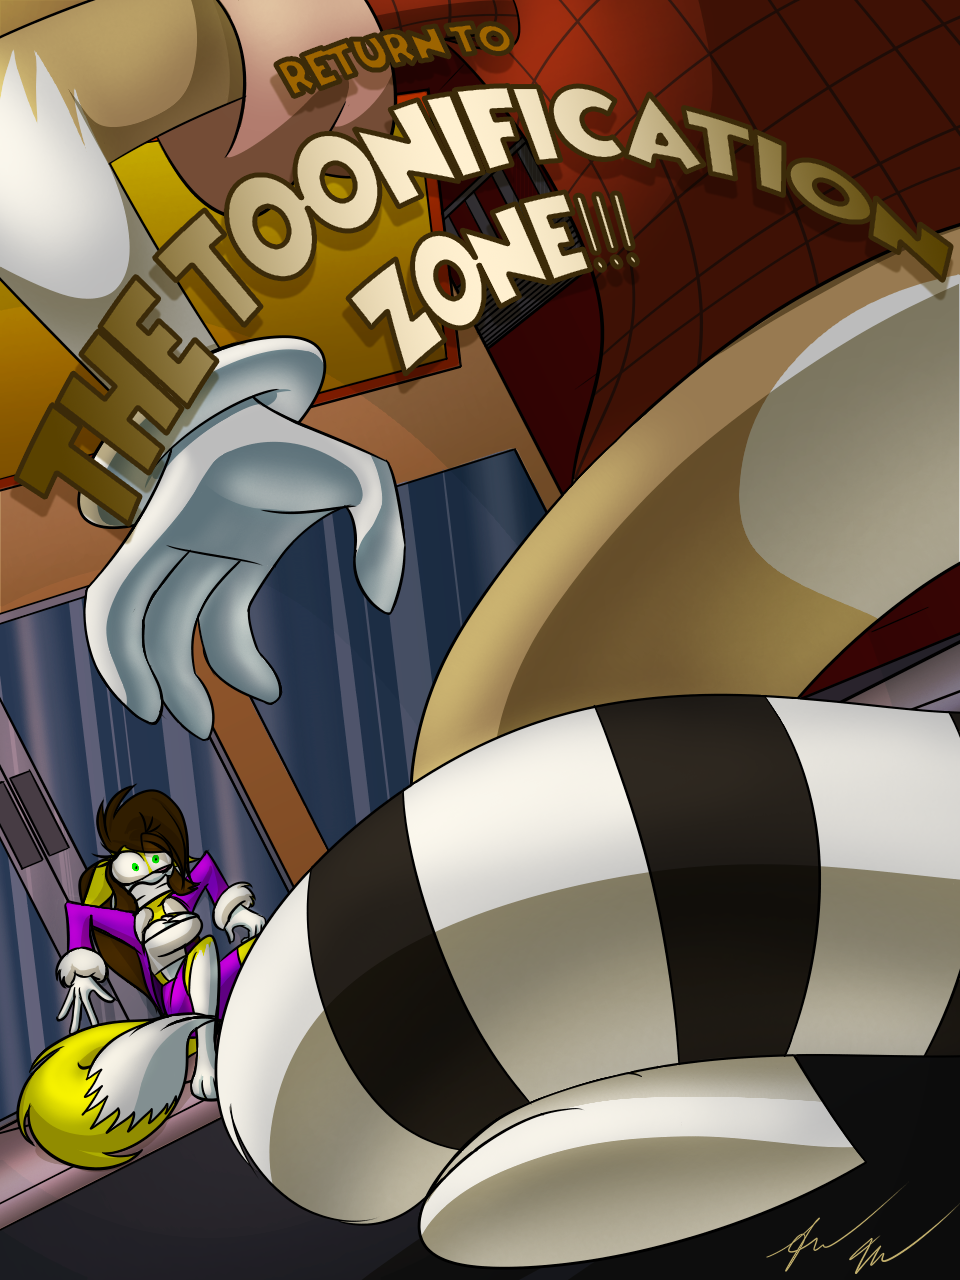 Return to The Toonification Zone, by Julio